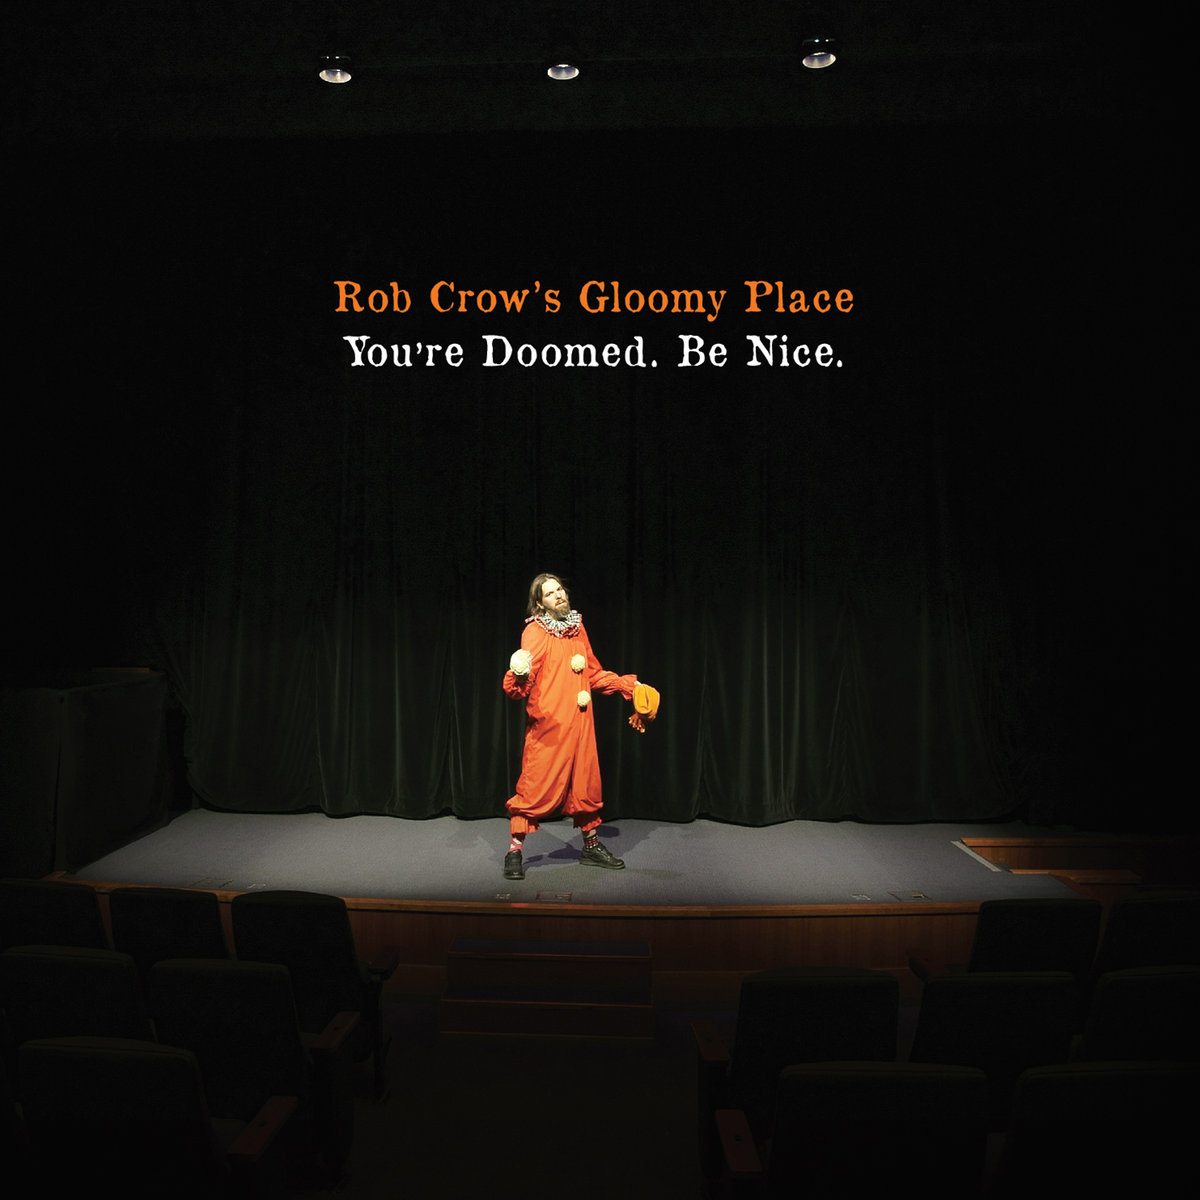 Rob Crow's Gloomy Place, You're Doomed. Be Nice